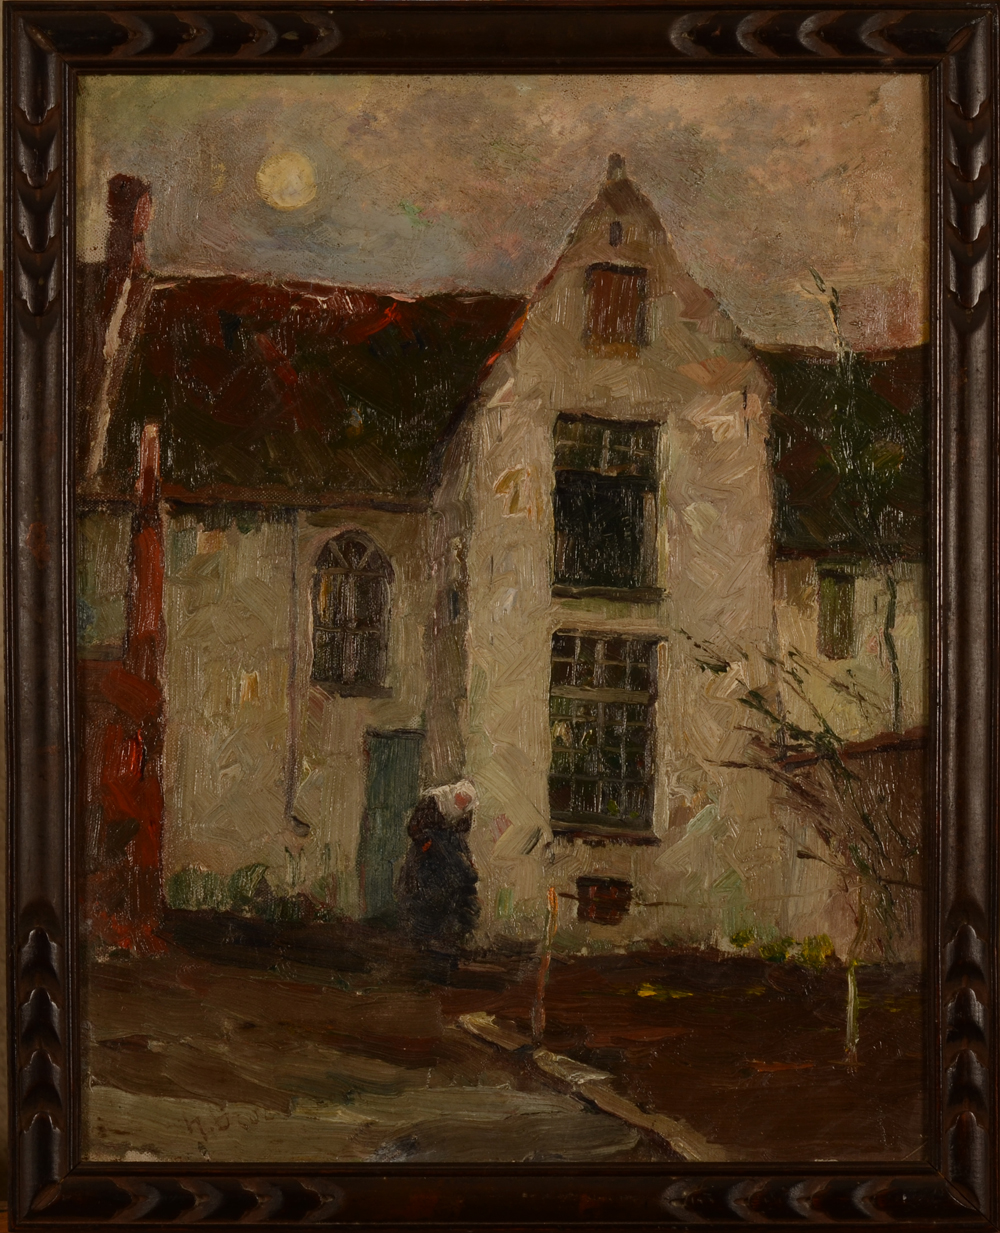 Herman Broeckaert Beguinage in the evening — in the original frame